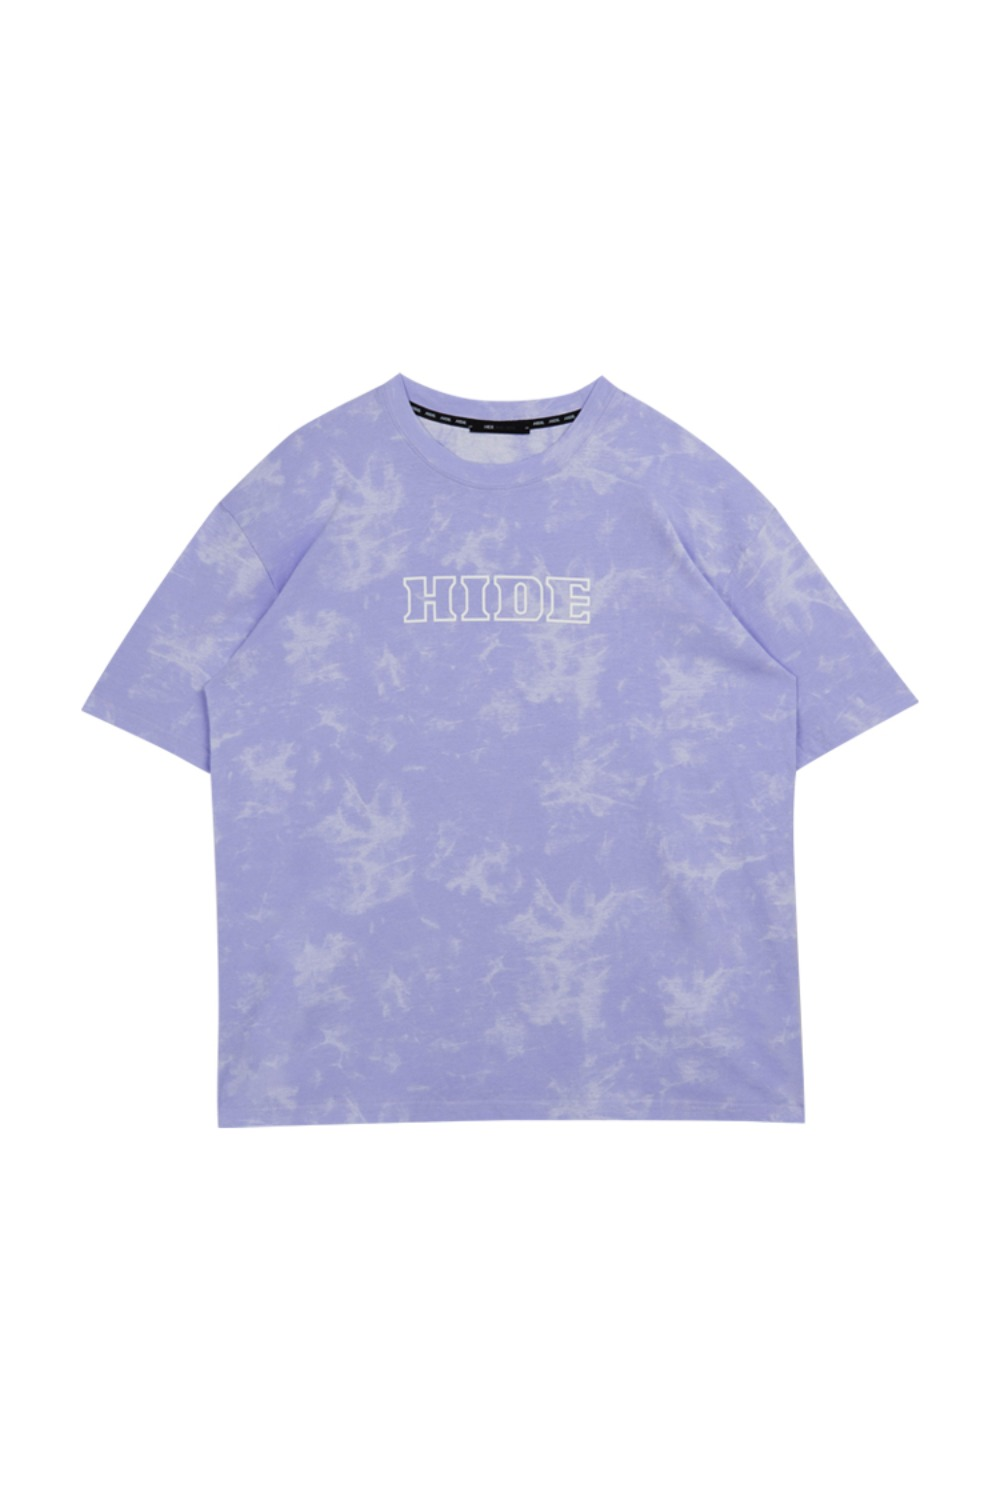 HIDE Tie Dye T-Shirt LIGHT PURPLE